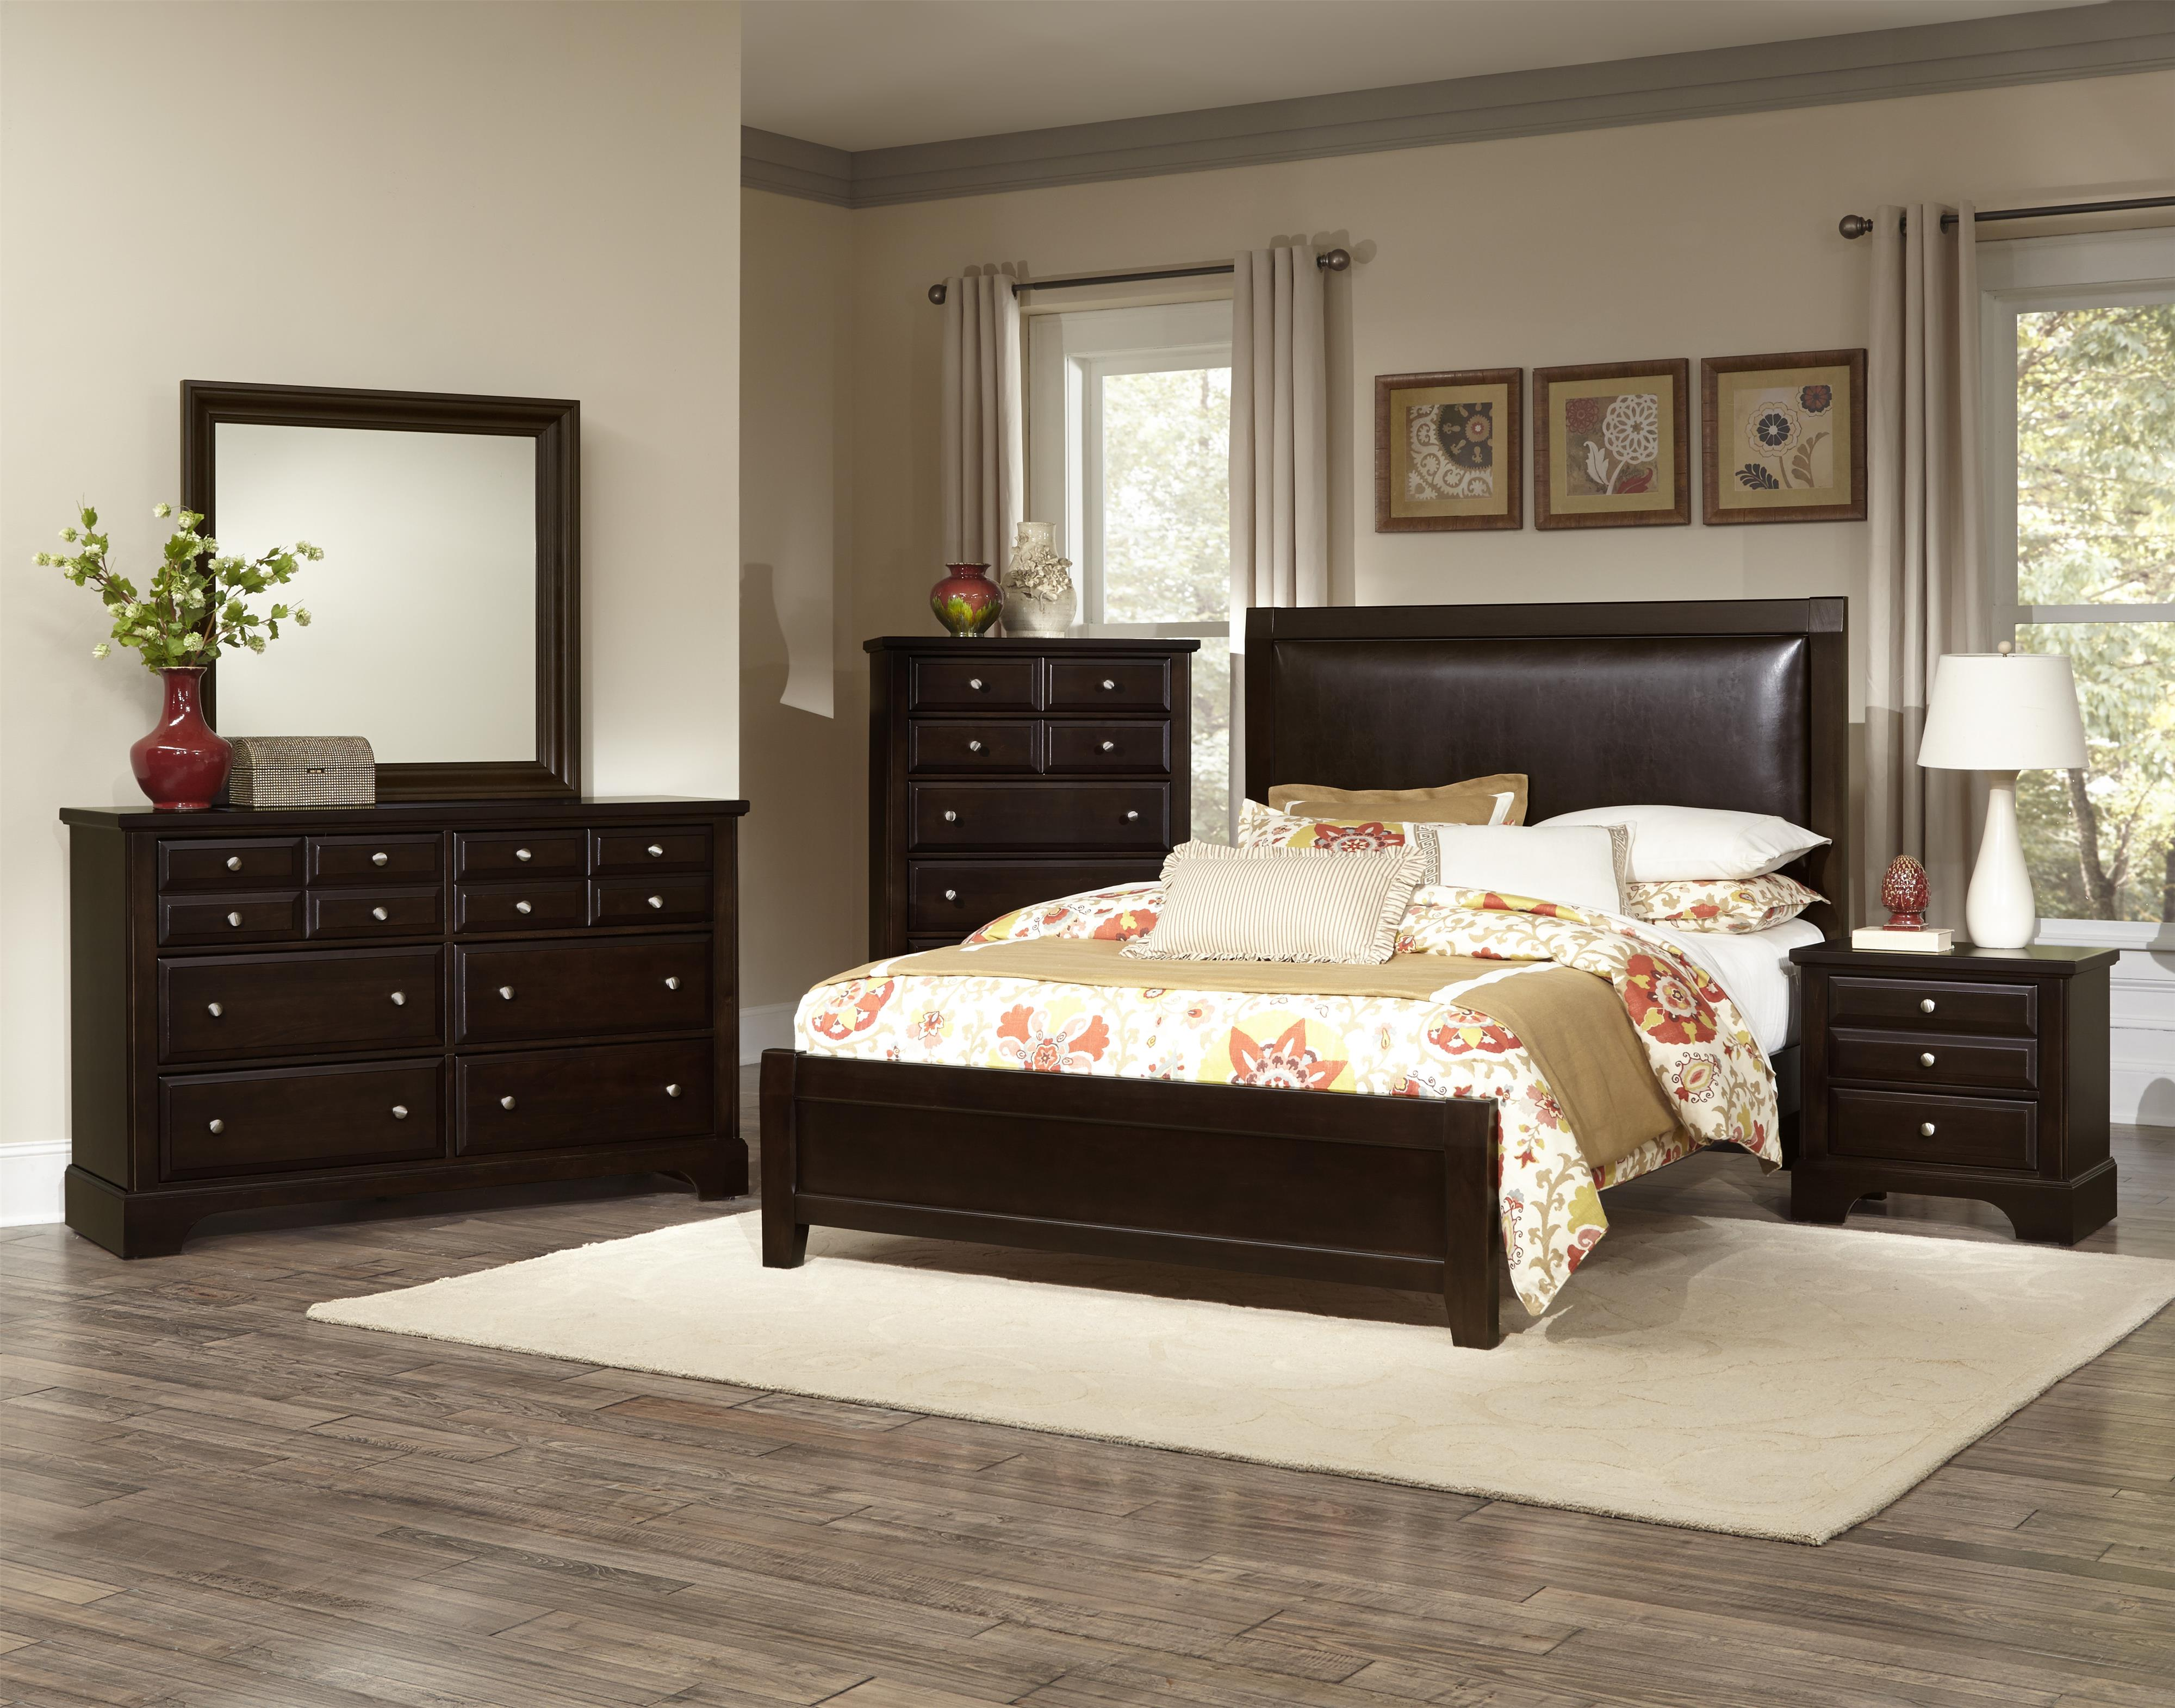 Vaughan Bassett Bedford Queen Bedroom Group - Item Number: BB88 Q Bedroom Group 2